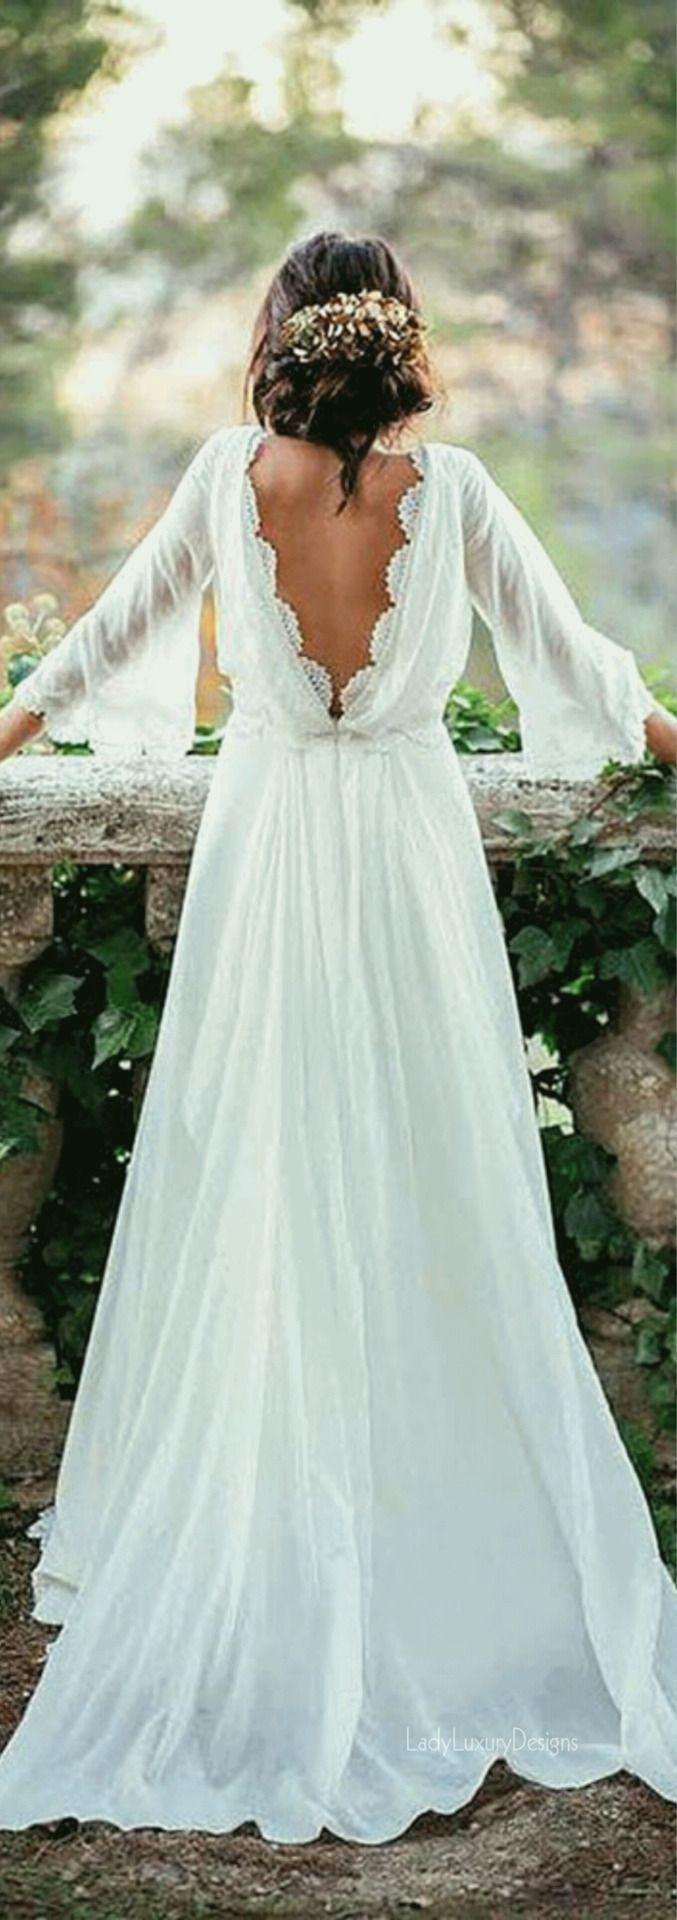 Boho Bridal - LadyLuxury7 | Wedding inspiration | Pinterest | De ...